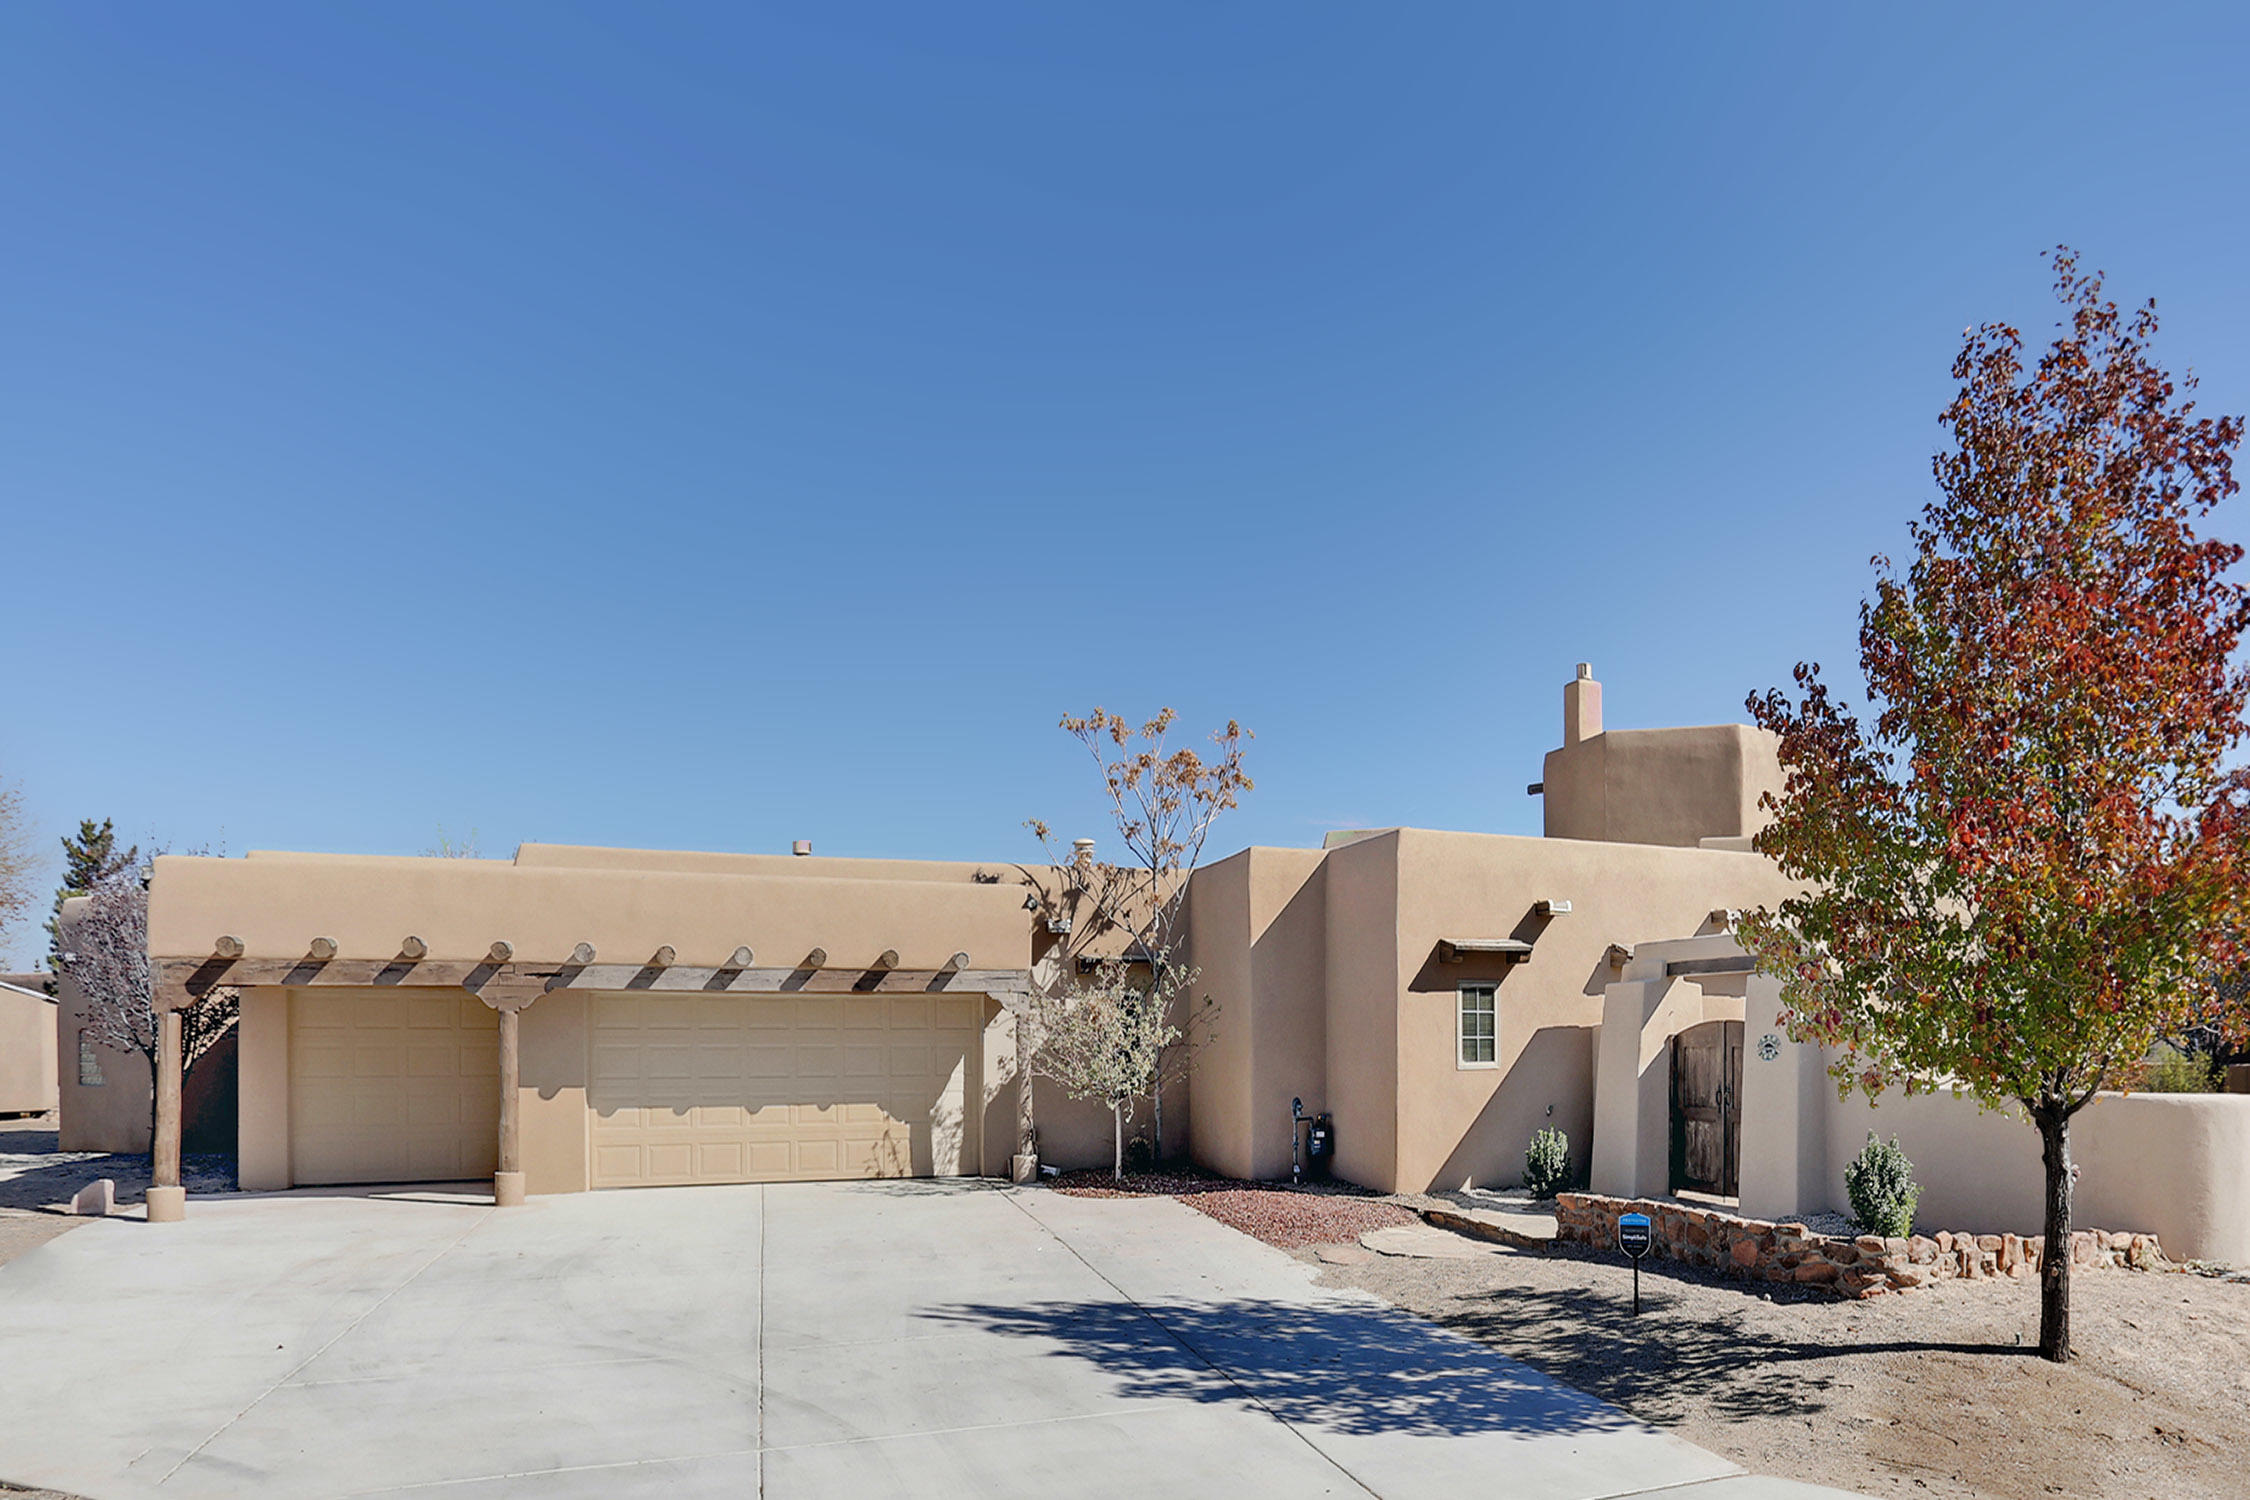 4700 NW Quaker Heights Place, Northwest Albuquerque and Northwest Heights, New Mexico